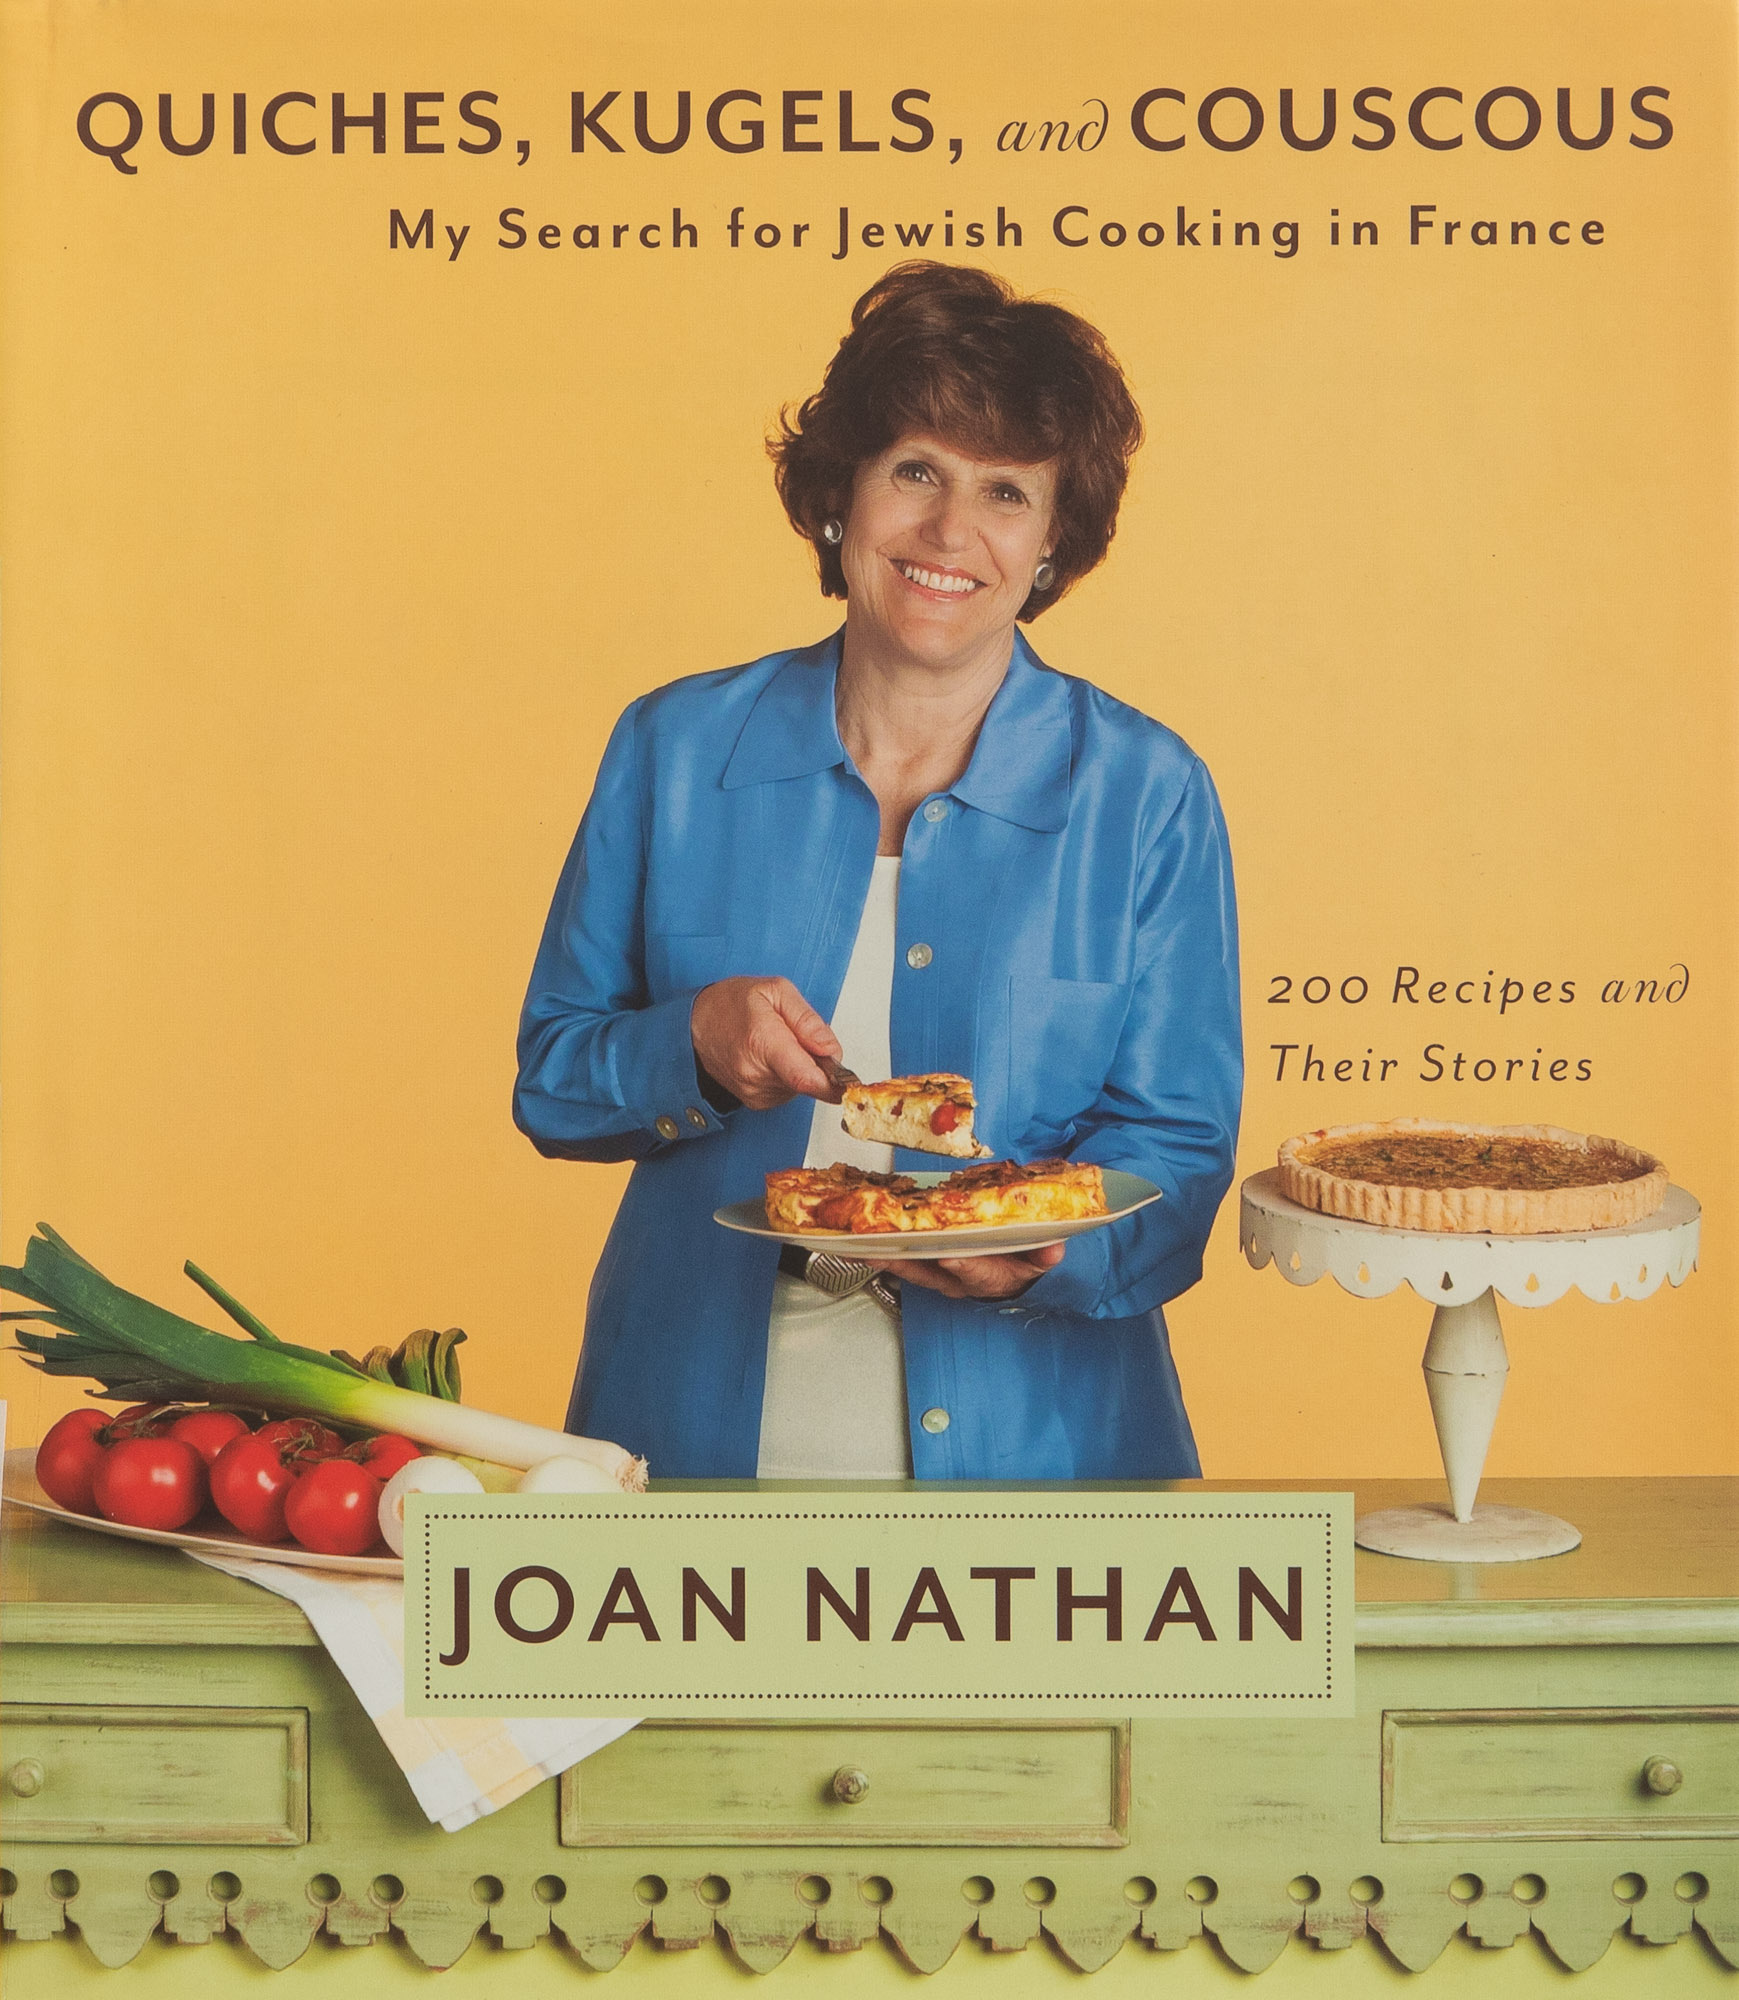 The cover of Joan Nathan's cookbook Quiches